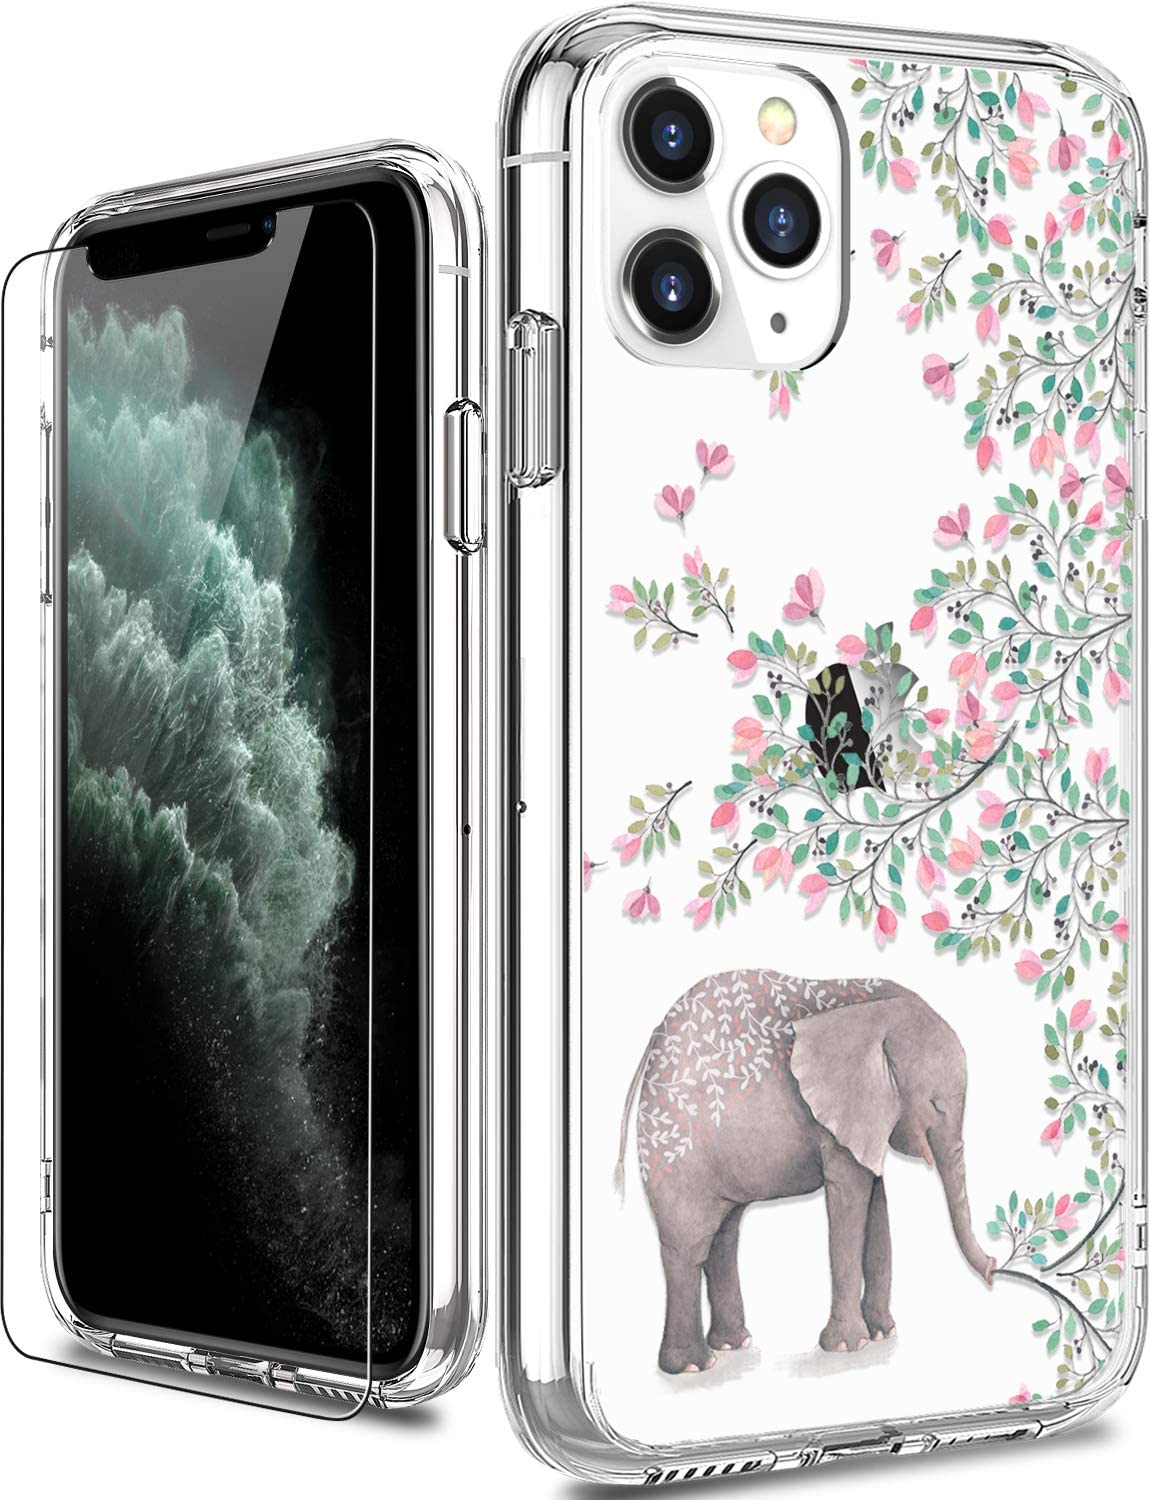 LUHOURI iPhone 11 Pro Case with Screen Protector,Clear with Cute Floral Flower Designs for Girls Women,Shockproof Slim Fit Protective Phone Case for iPhone 11 Pro 5.8 inch 2019 Elephant